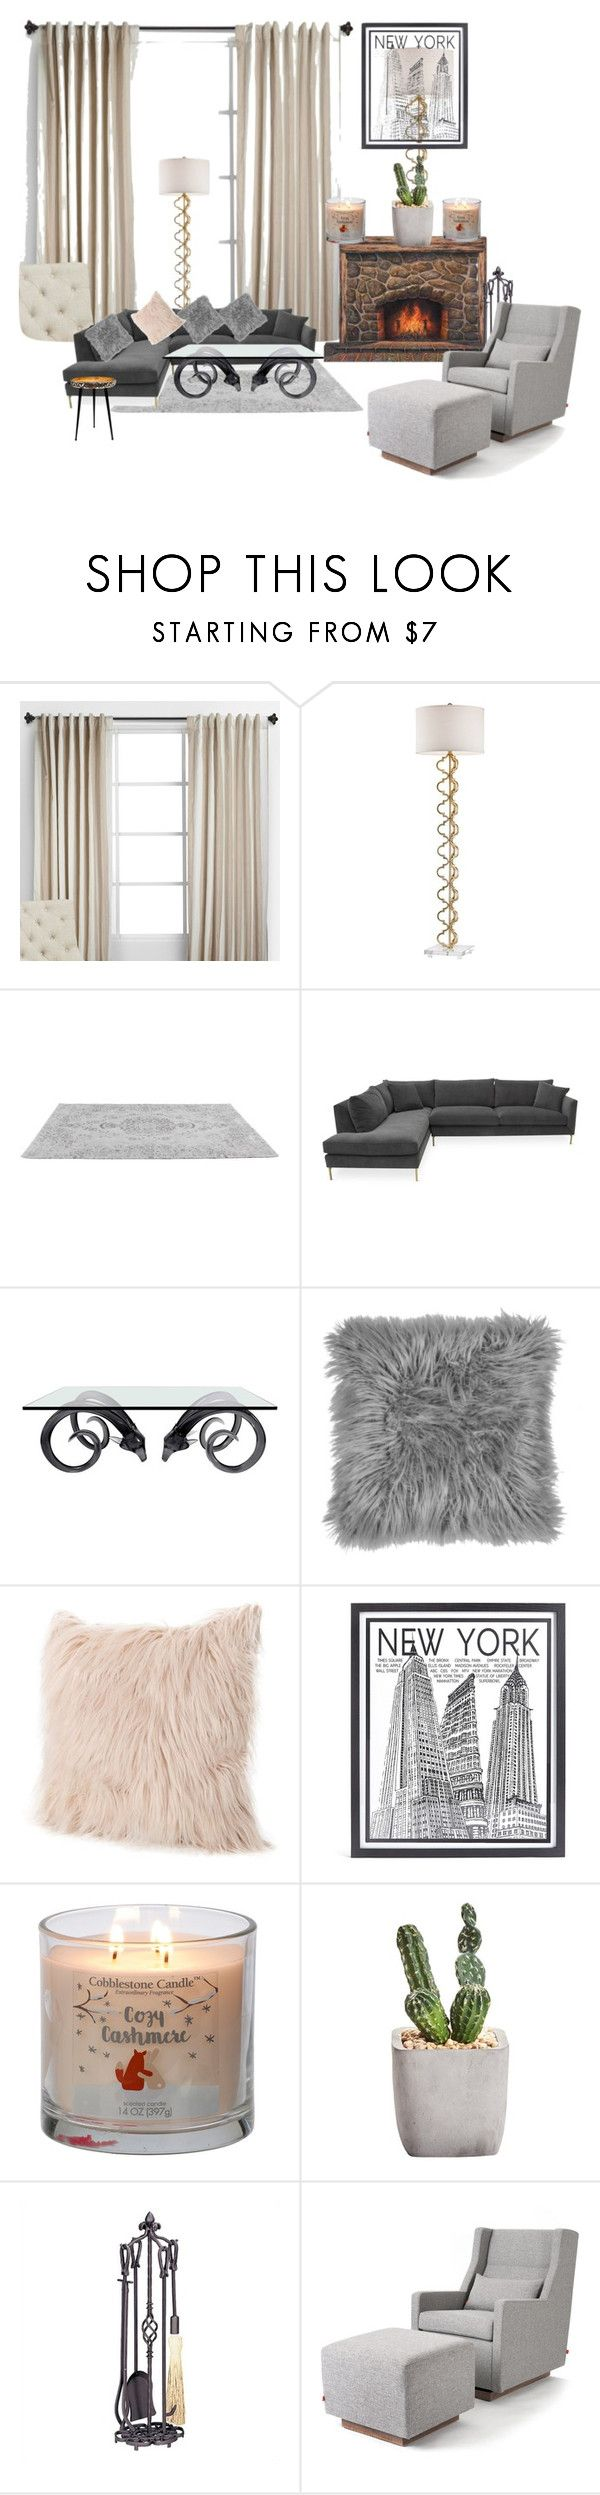 """""""Home sweet home"""" by michelle-thompson-v ❤ liked on Polyvore featuring interior, interiors, interior design, home, home decor, interior decorating, Jonathan Adler, Stephenson, Uniflame and Gus* Modern"""